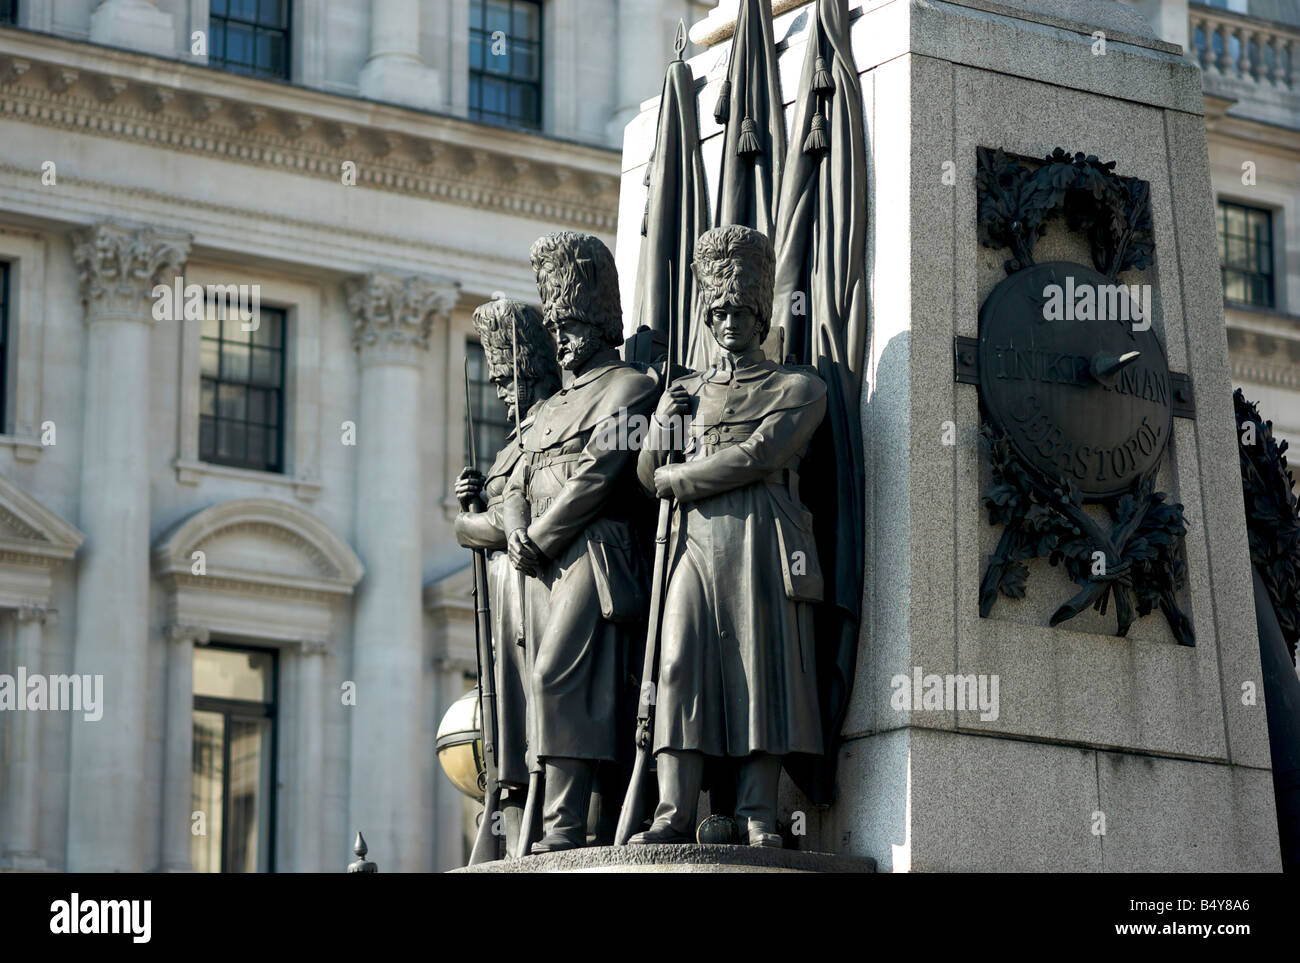 The Guards Monument of 1859 commerating the 22,162 guardsmen who died in the Crimean War set in London UK - Stock Image